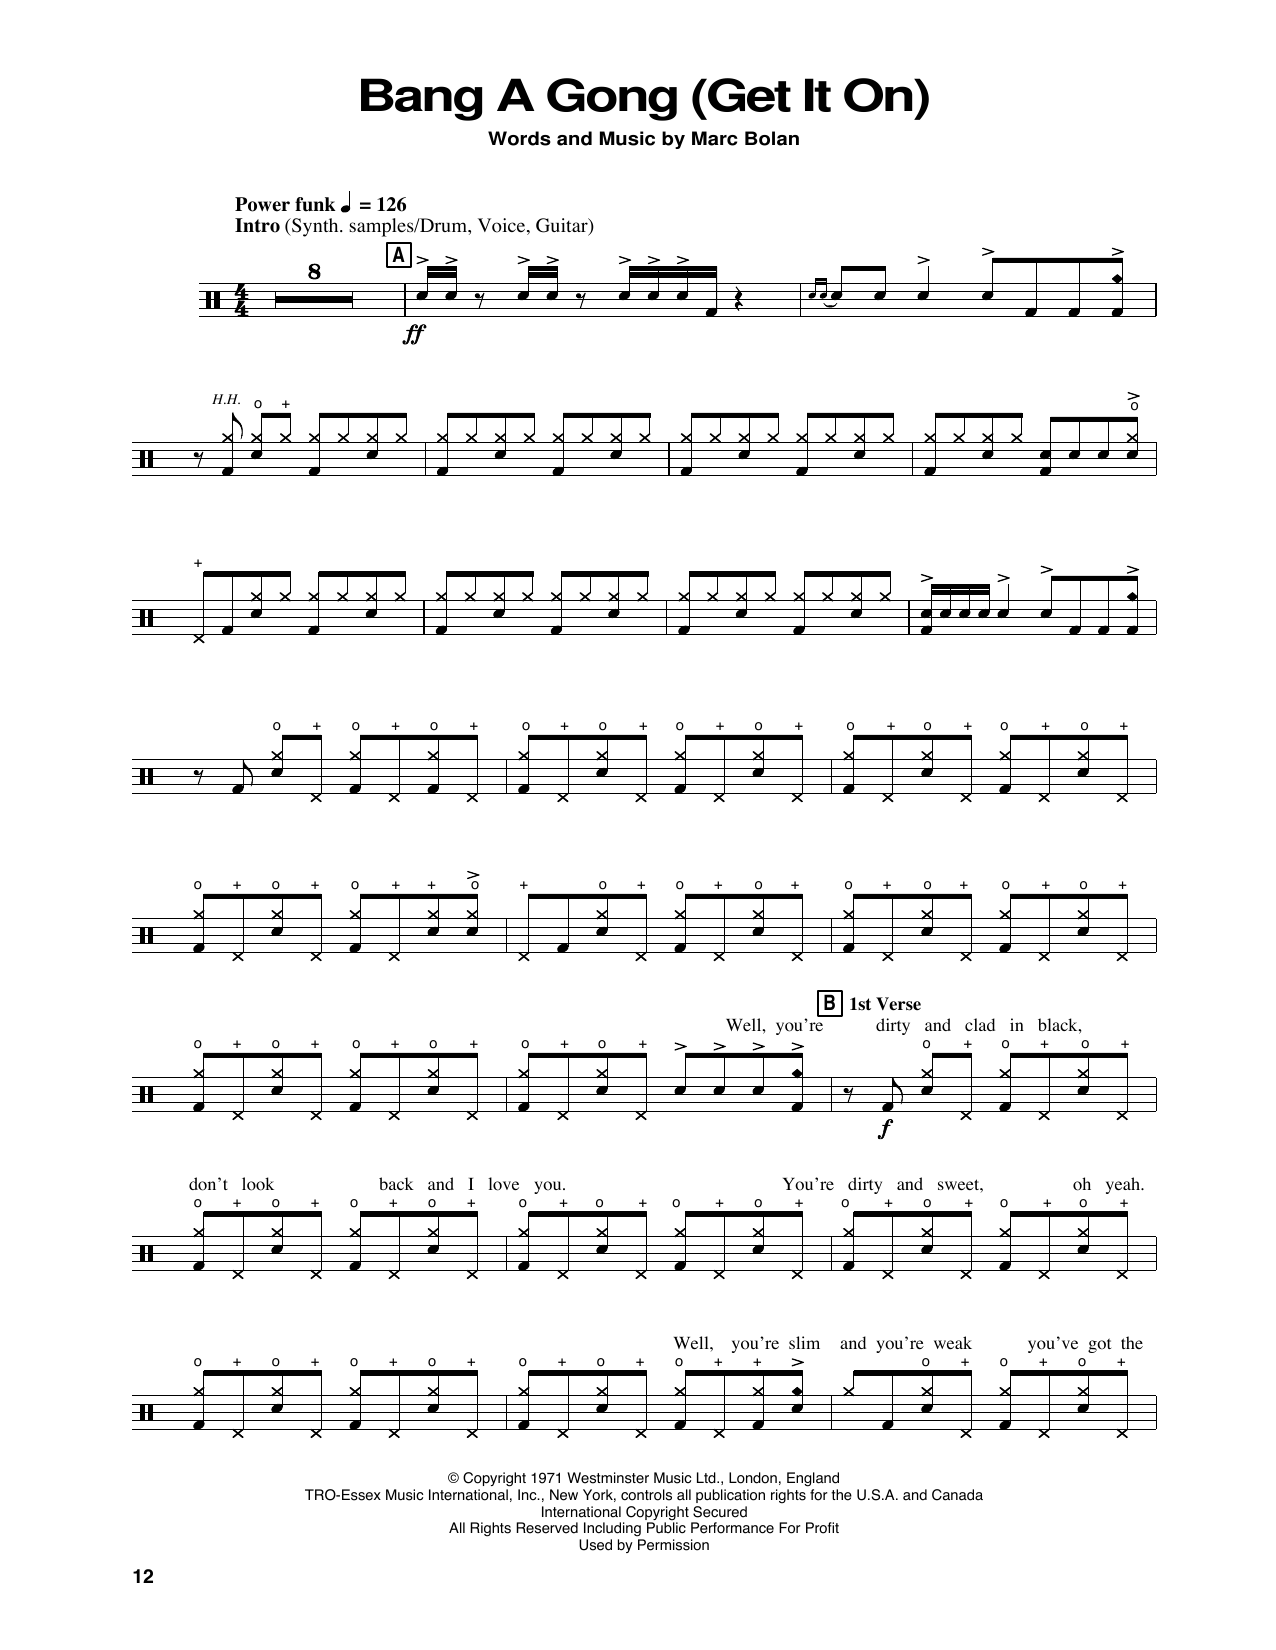 Power Station Bang A Gong (Get It On) sheet music notes and chords. Download Printable PDF.